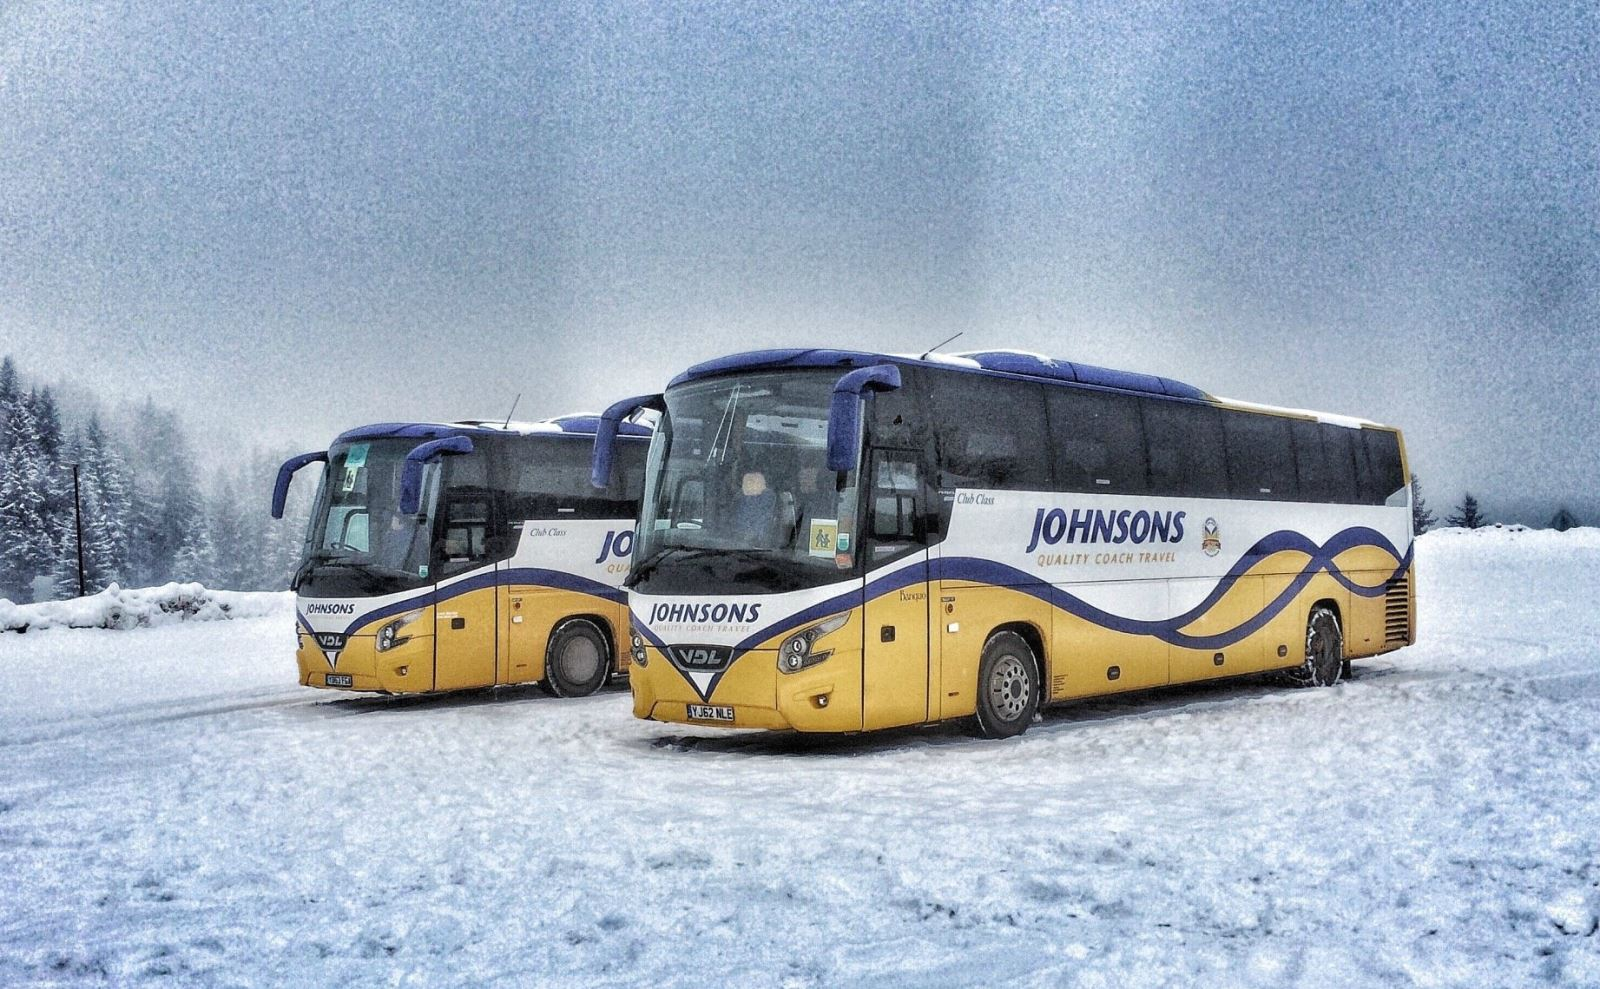 Johnsons Coaches on Ski Trips